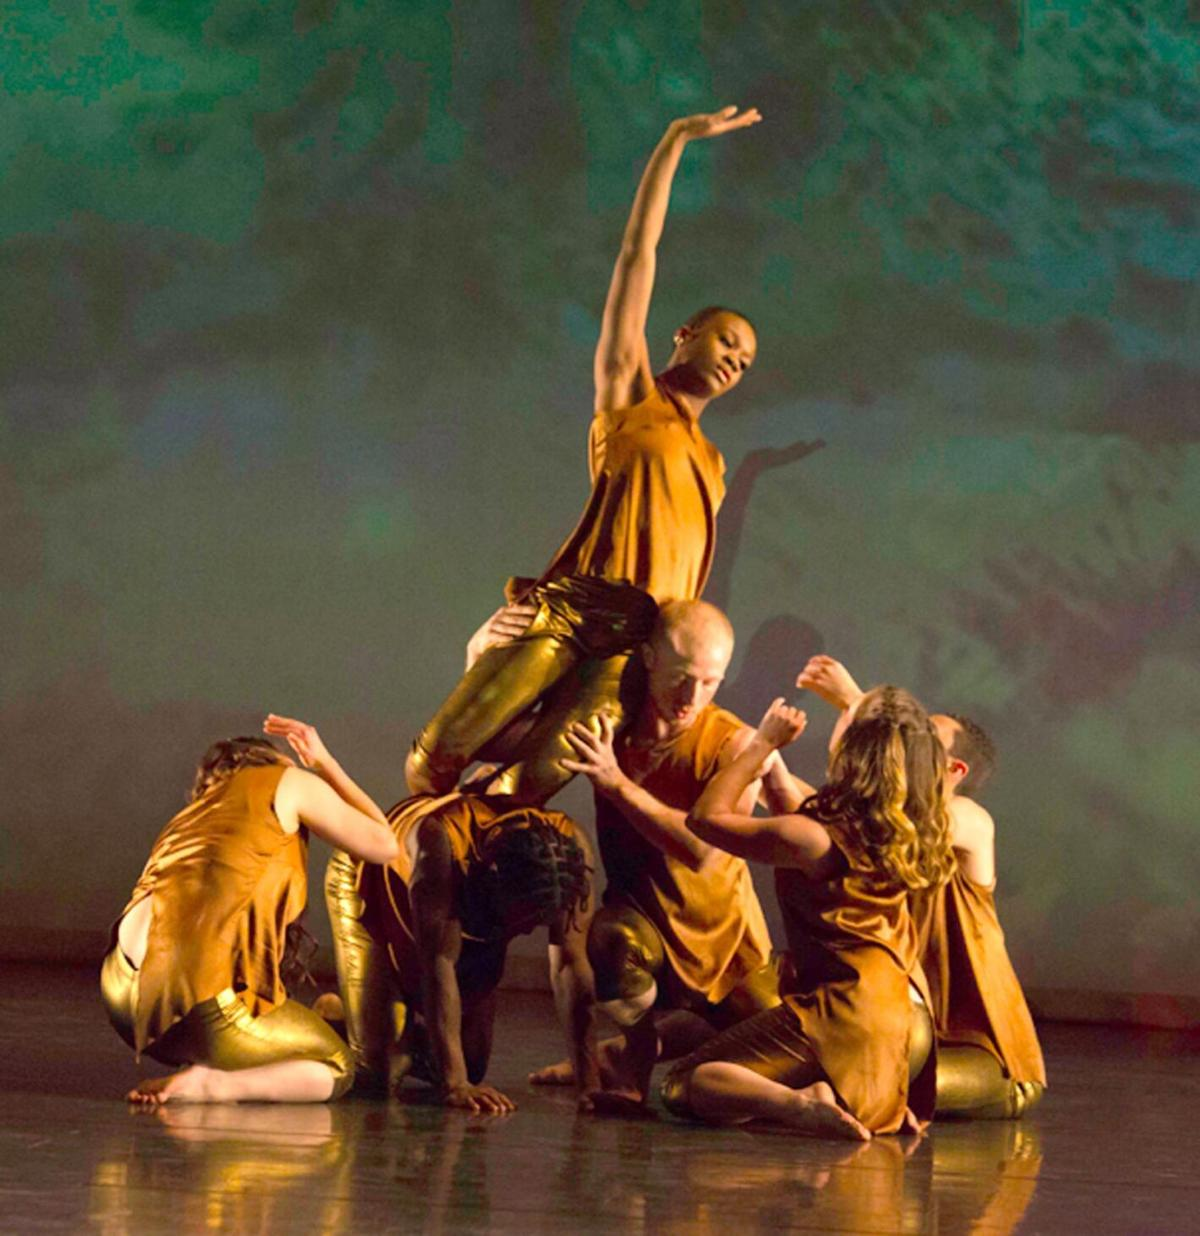 'Dance of Da Vinci 2.0' premieres at Hill-Stead Museum in Farmington